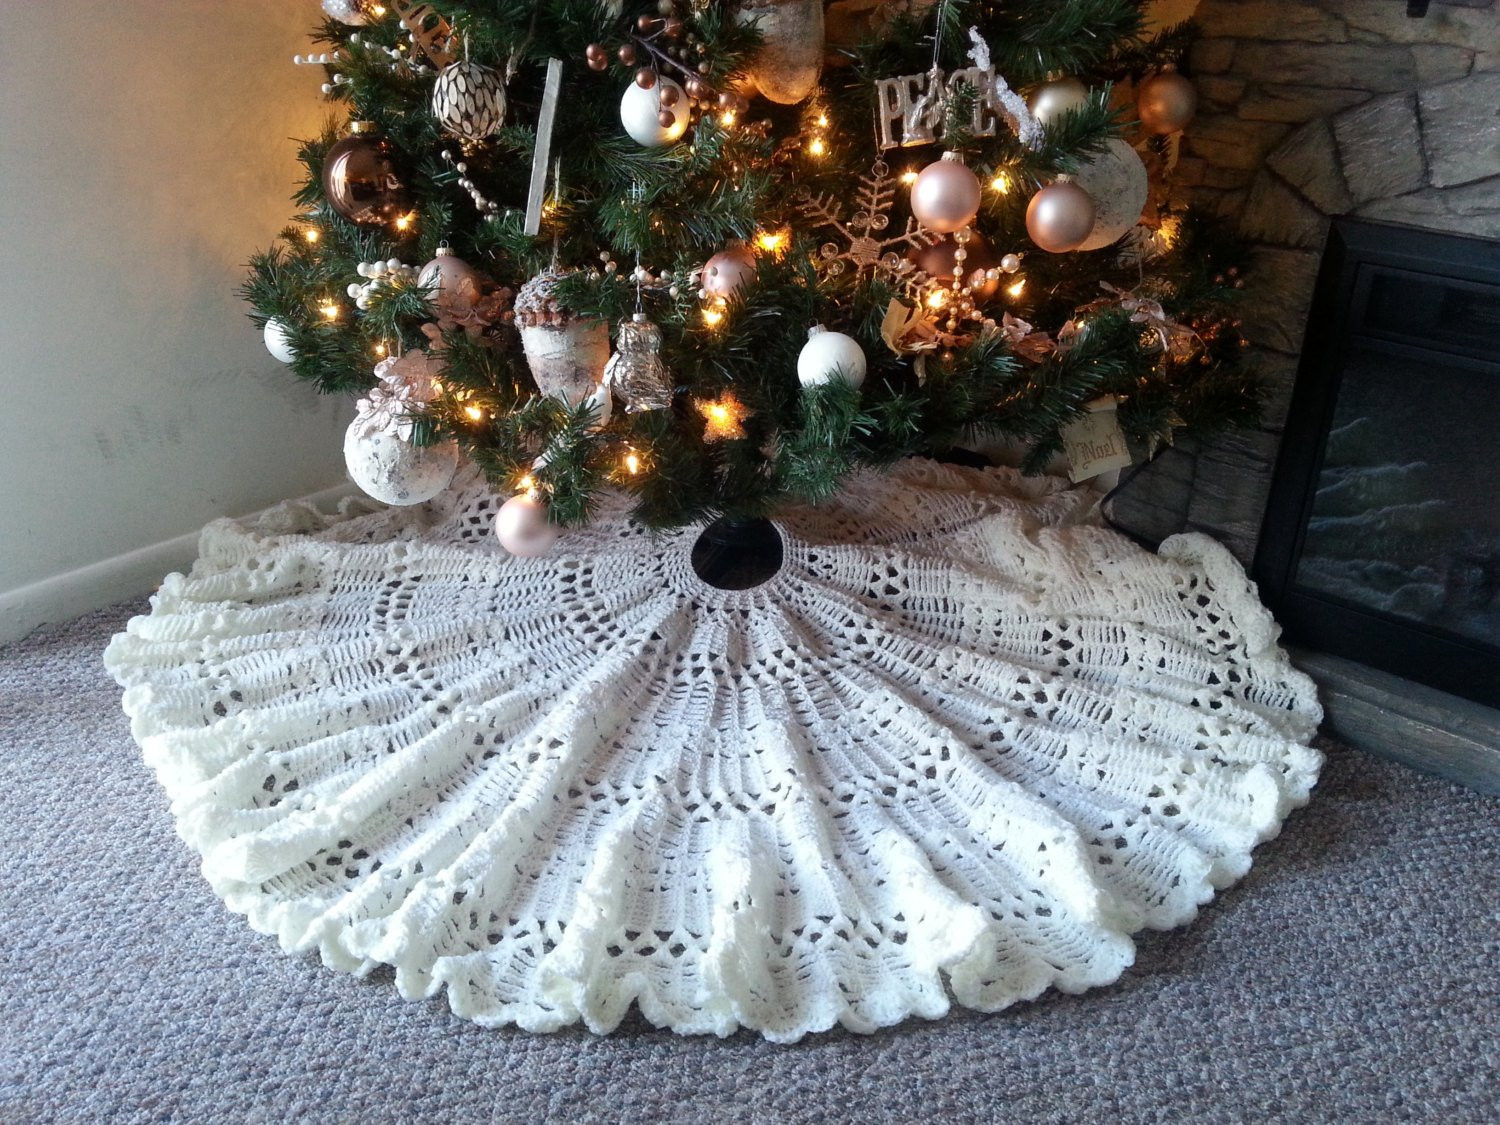 Luxury Crocheted Heirloom Christmas Tree Skirt Pattern Crochet Tree Skirt Of Innovative 45 Ideas Crochet Tree Skirt